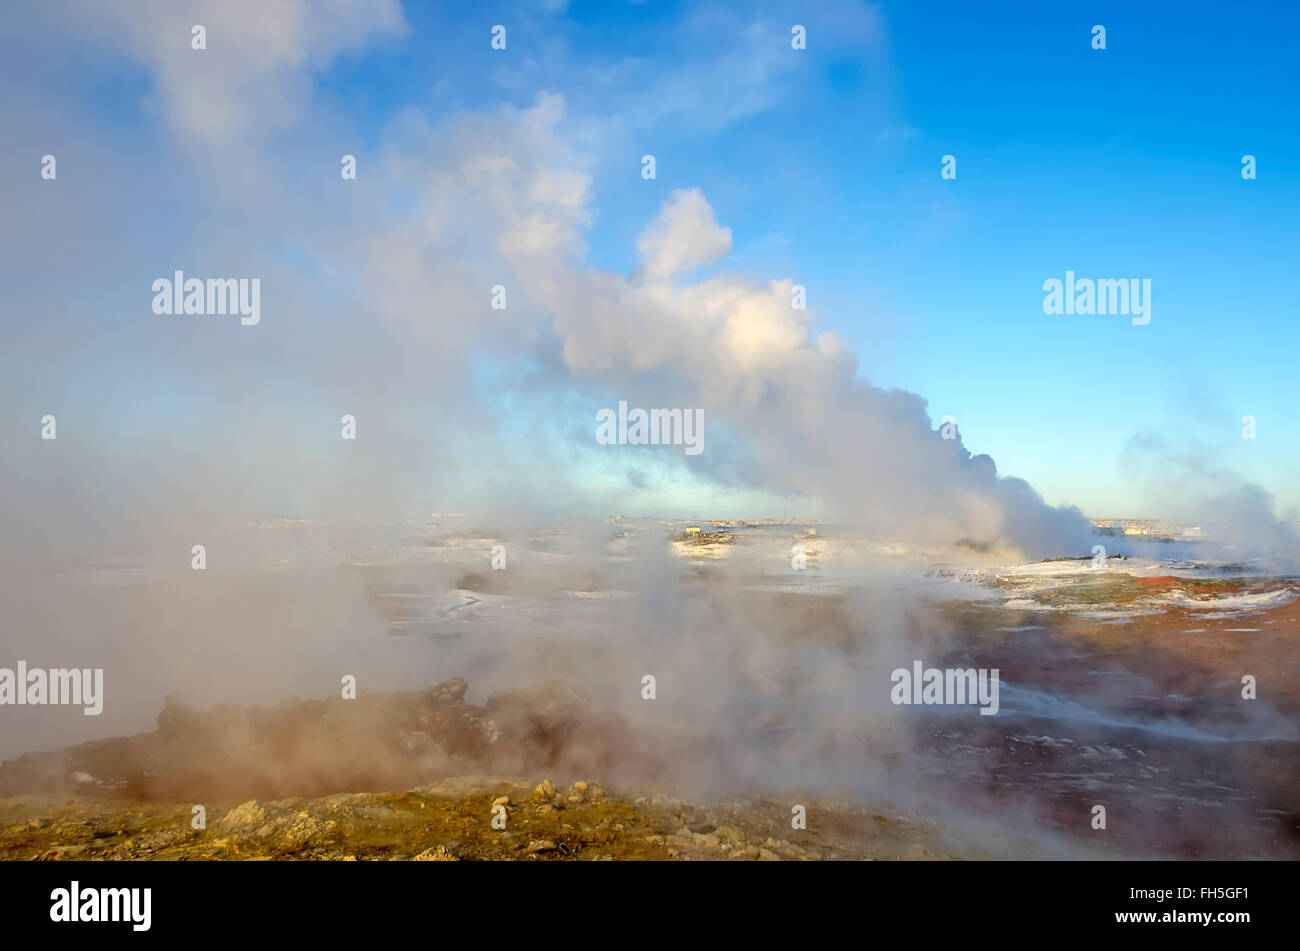 Gunnuhver geothermal area winter steam vents from boiling hot springs  Reykjanes Peninsula Iceland - Stock Image